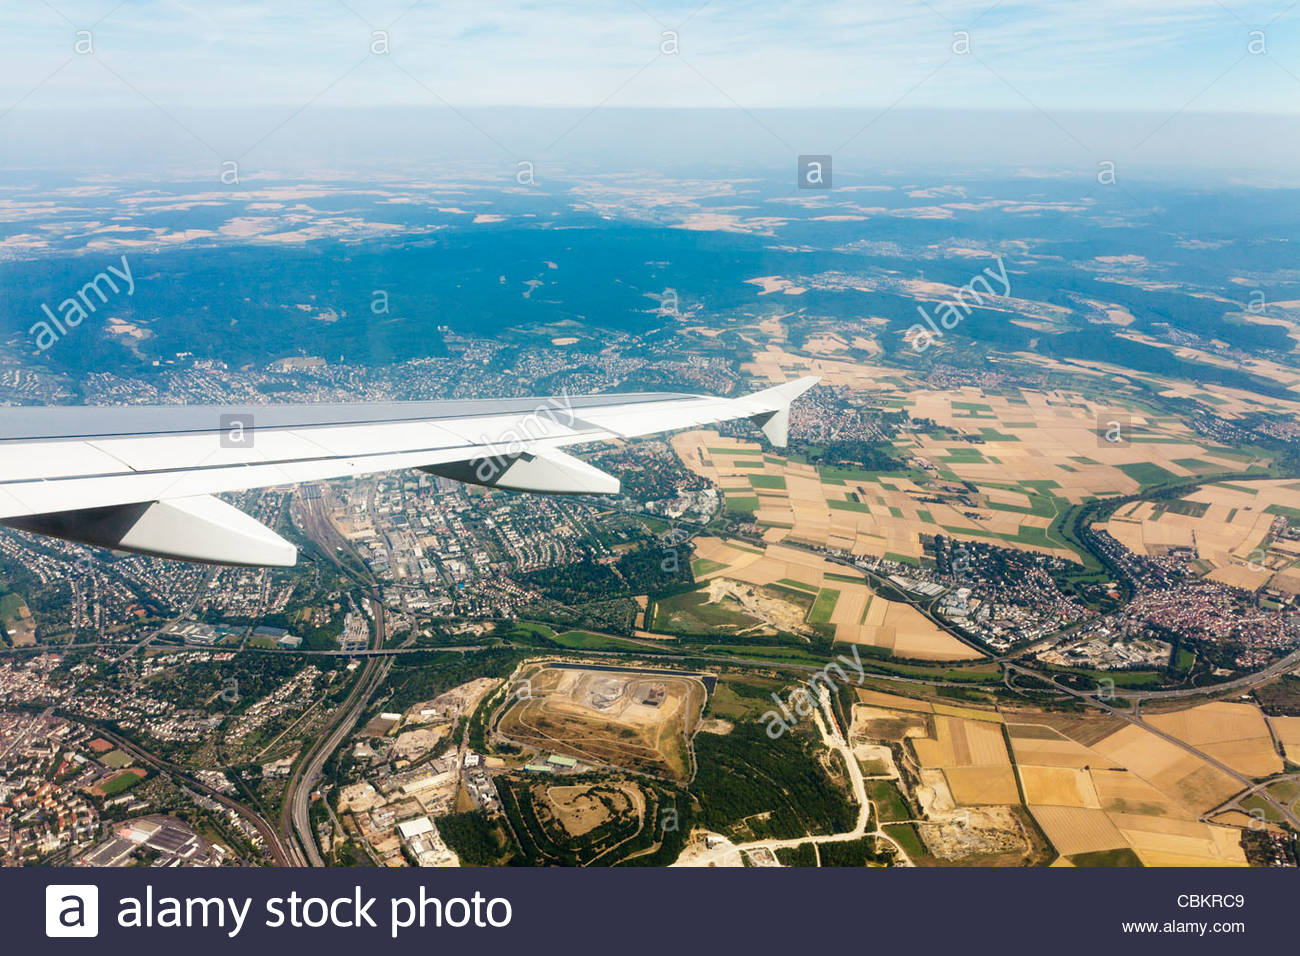 View from airplane as it takes of from Frankfurt International Airport, Frankfurt, Germany - Stock Image